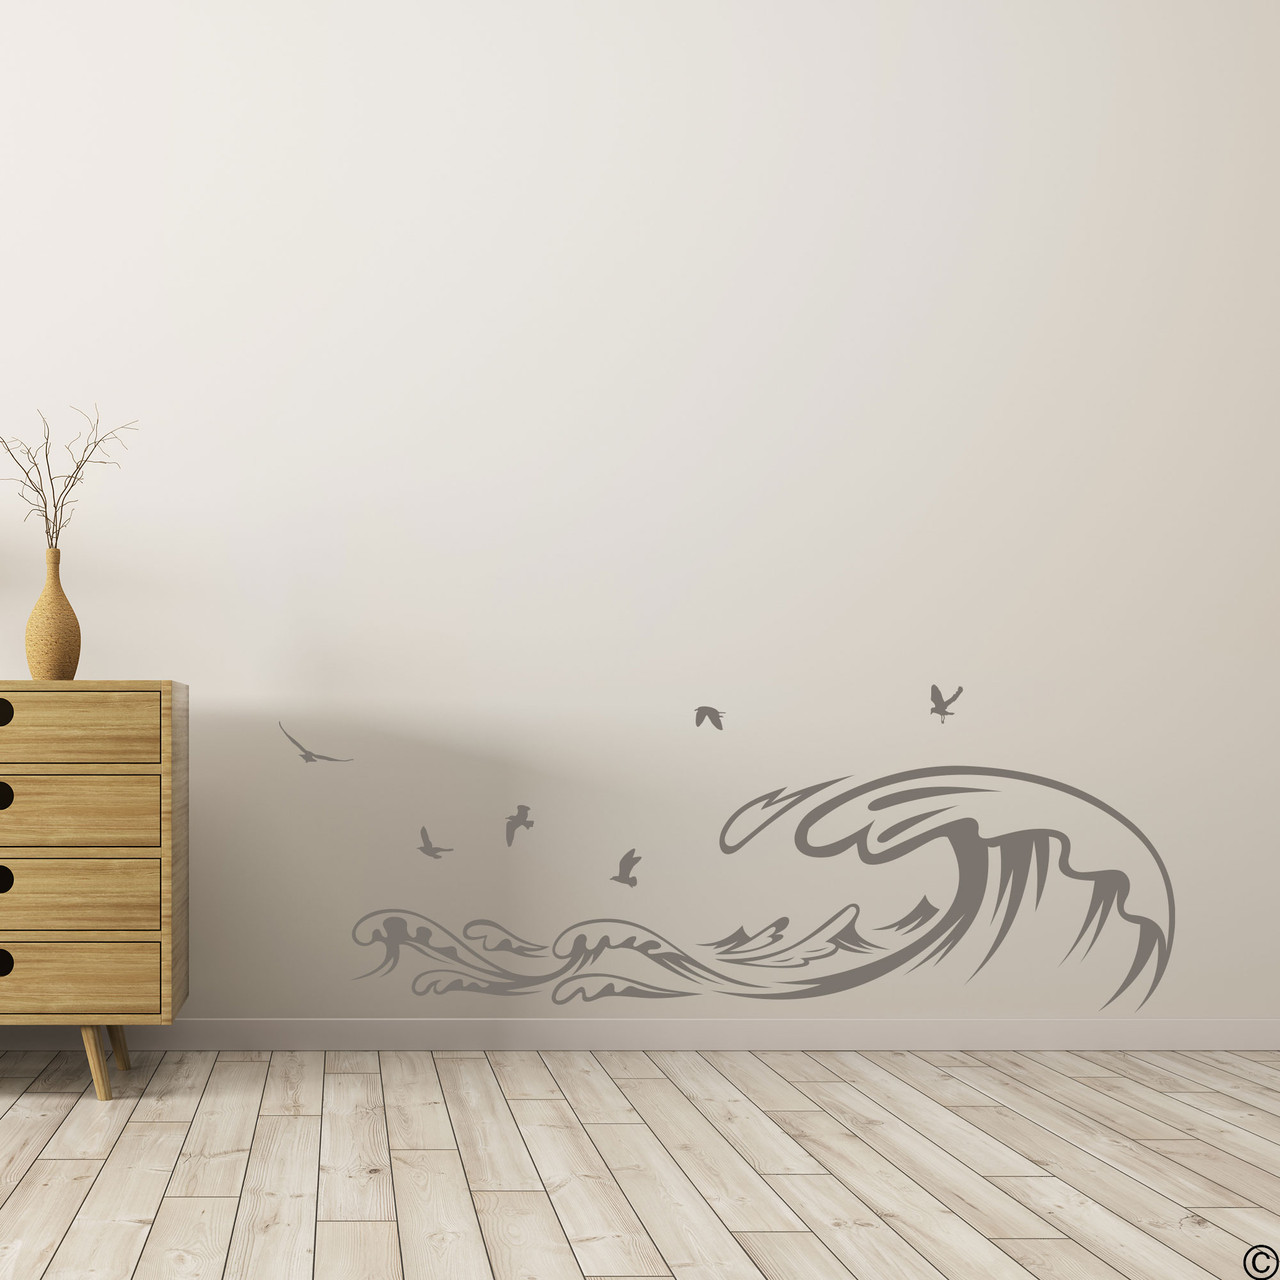 The Waves and Seagulls wall decal shown here in the limited edition castle grey vinyl color.